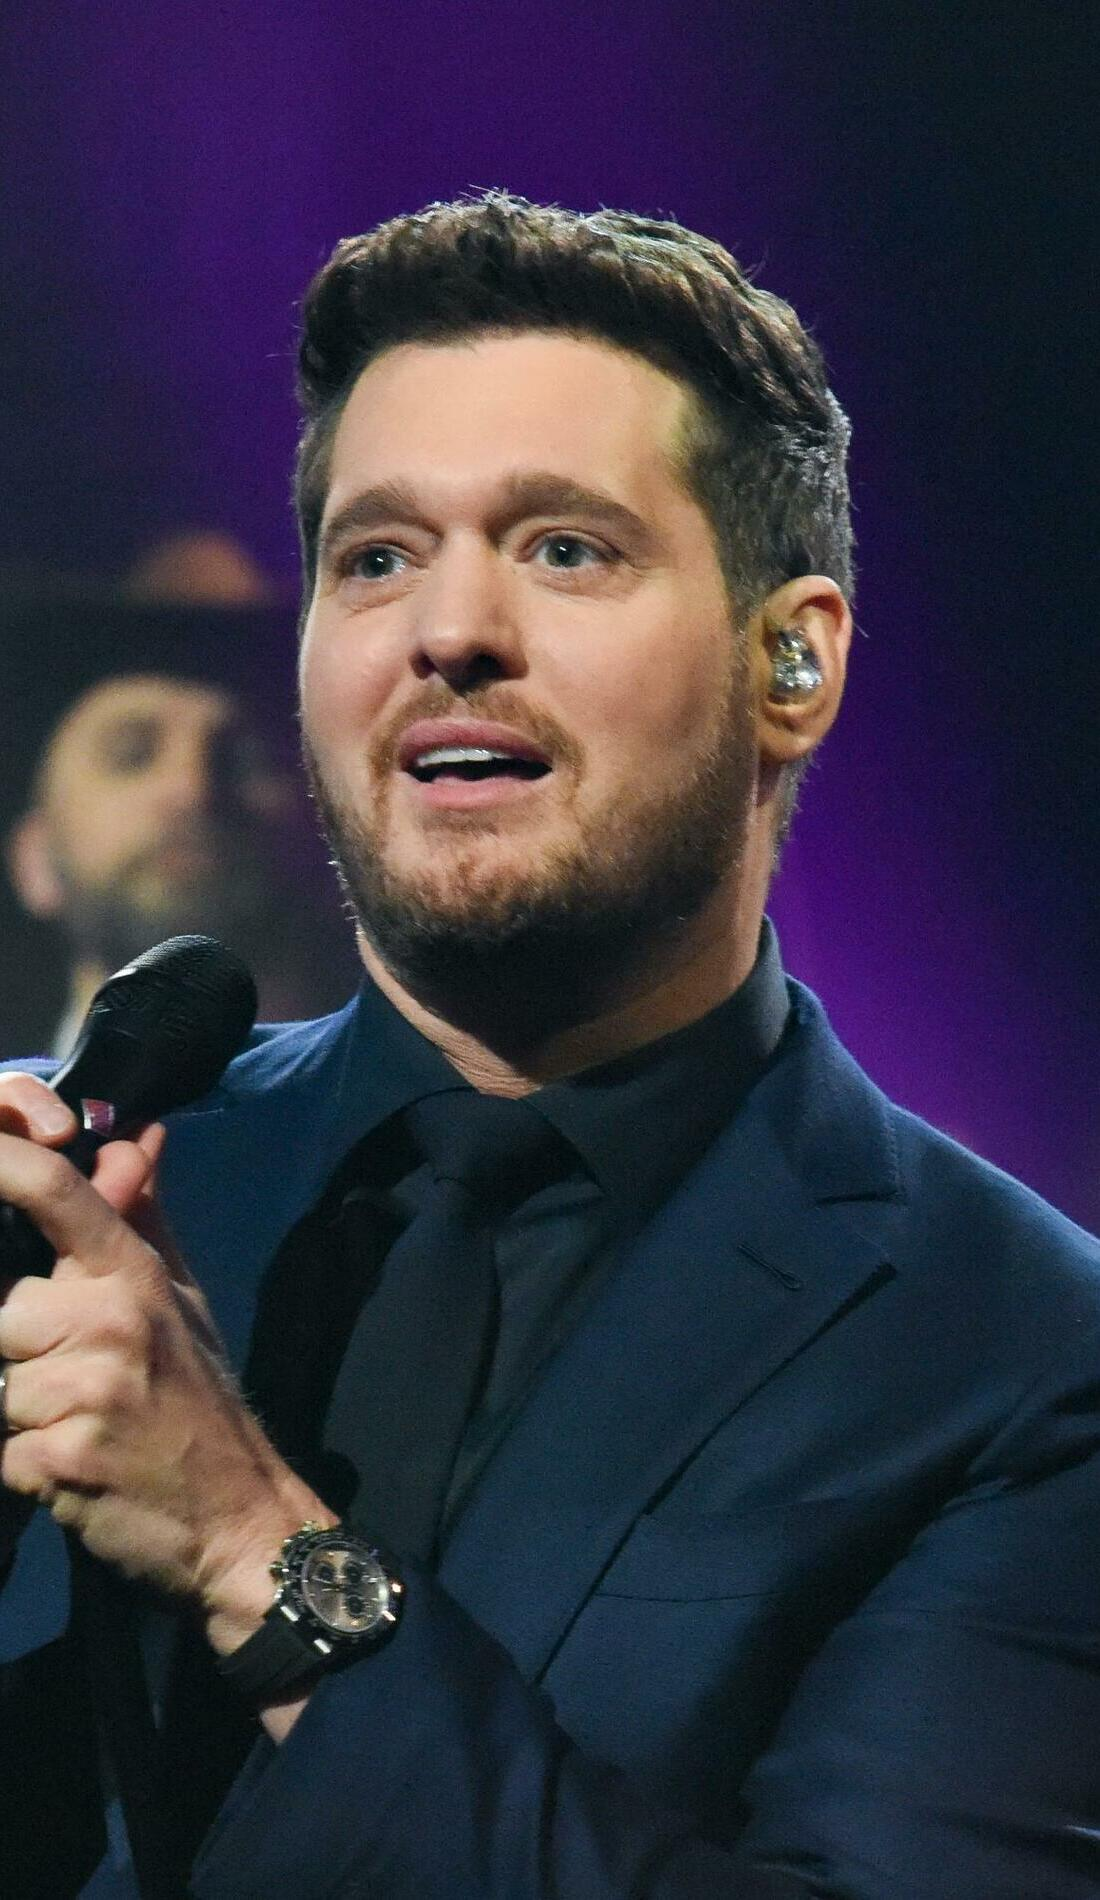 A Michael Buble live event